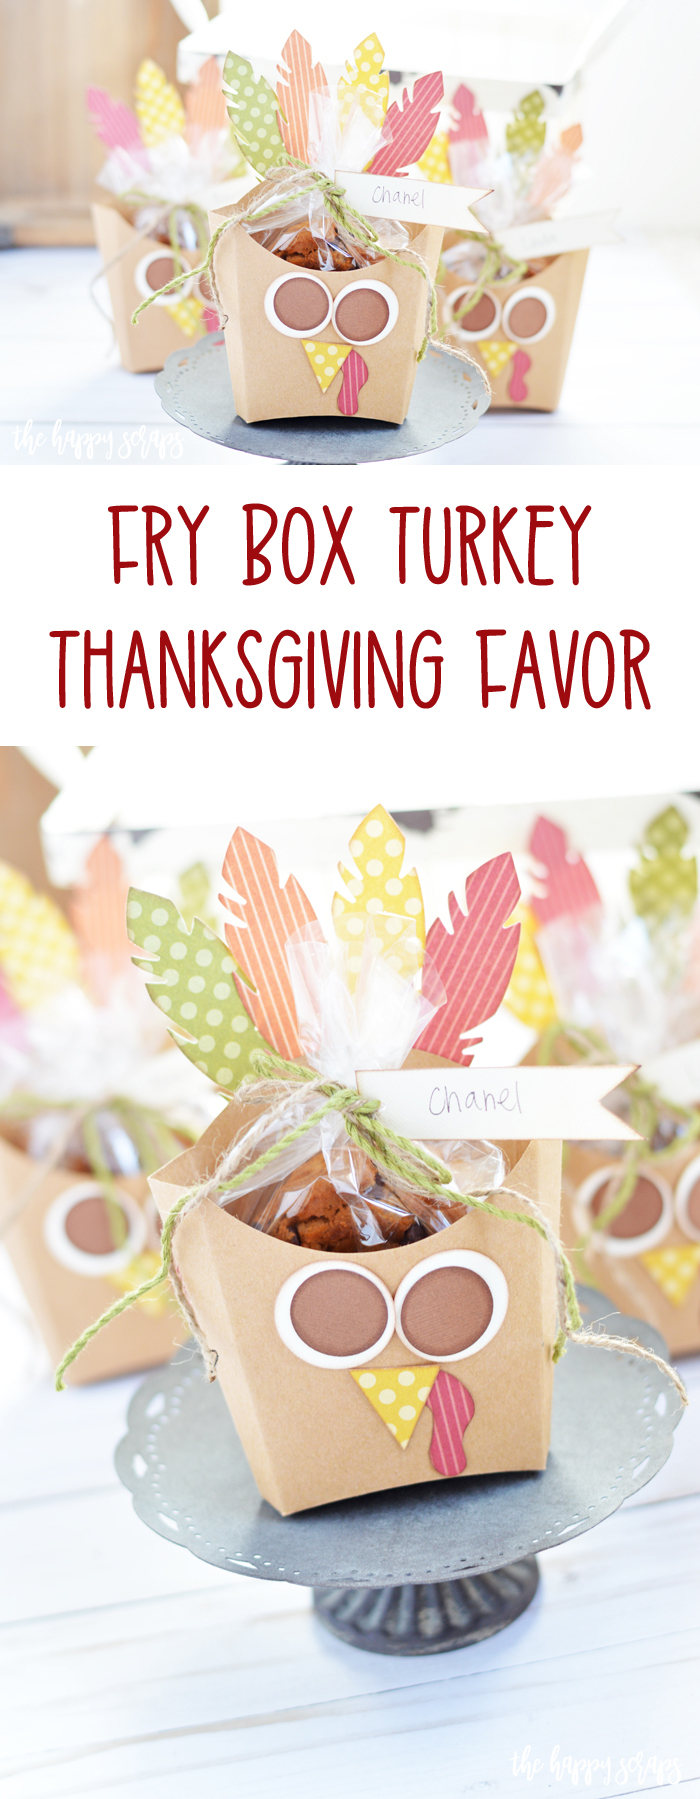 This Fry Box Turkey - Thanksgiving Favor is the perfect gift for ministering or you can use it for Thanksgiving day as a favor for guests.